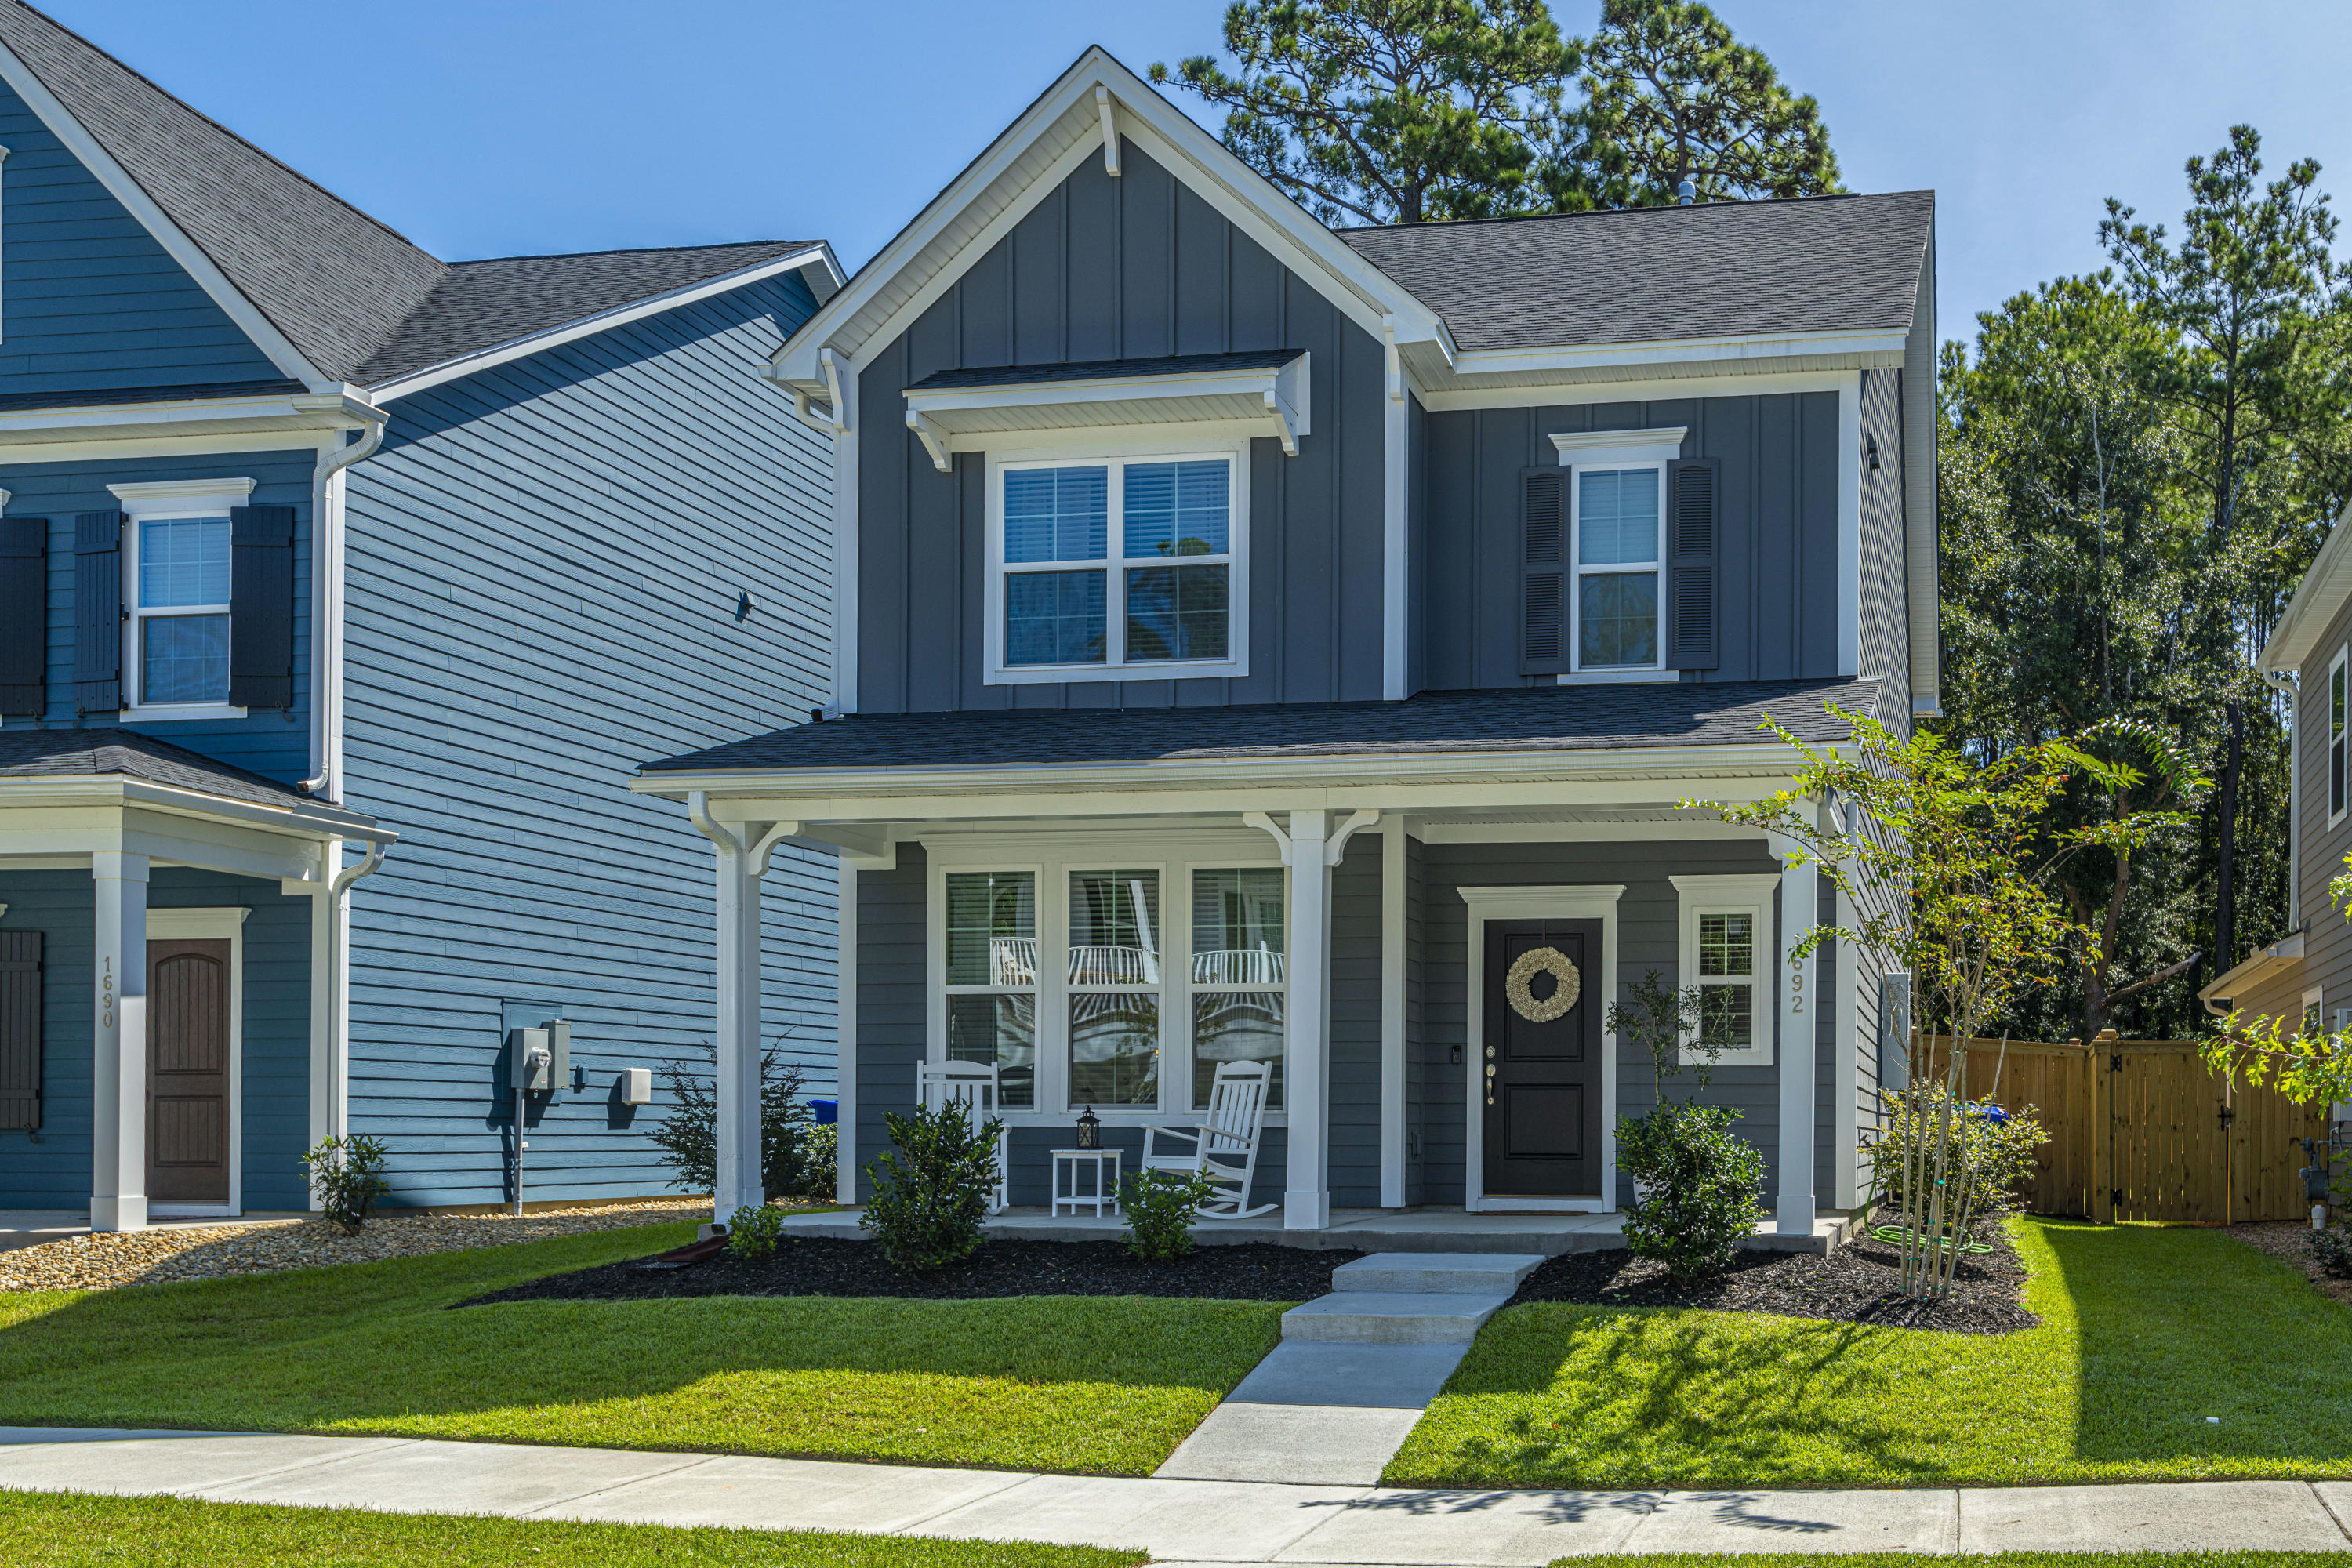 The Oaks at St Johns Crossing Homes For Sale - 1692 Emmets, Johns Island, SC - 0